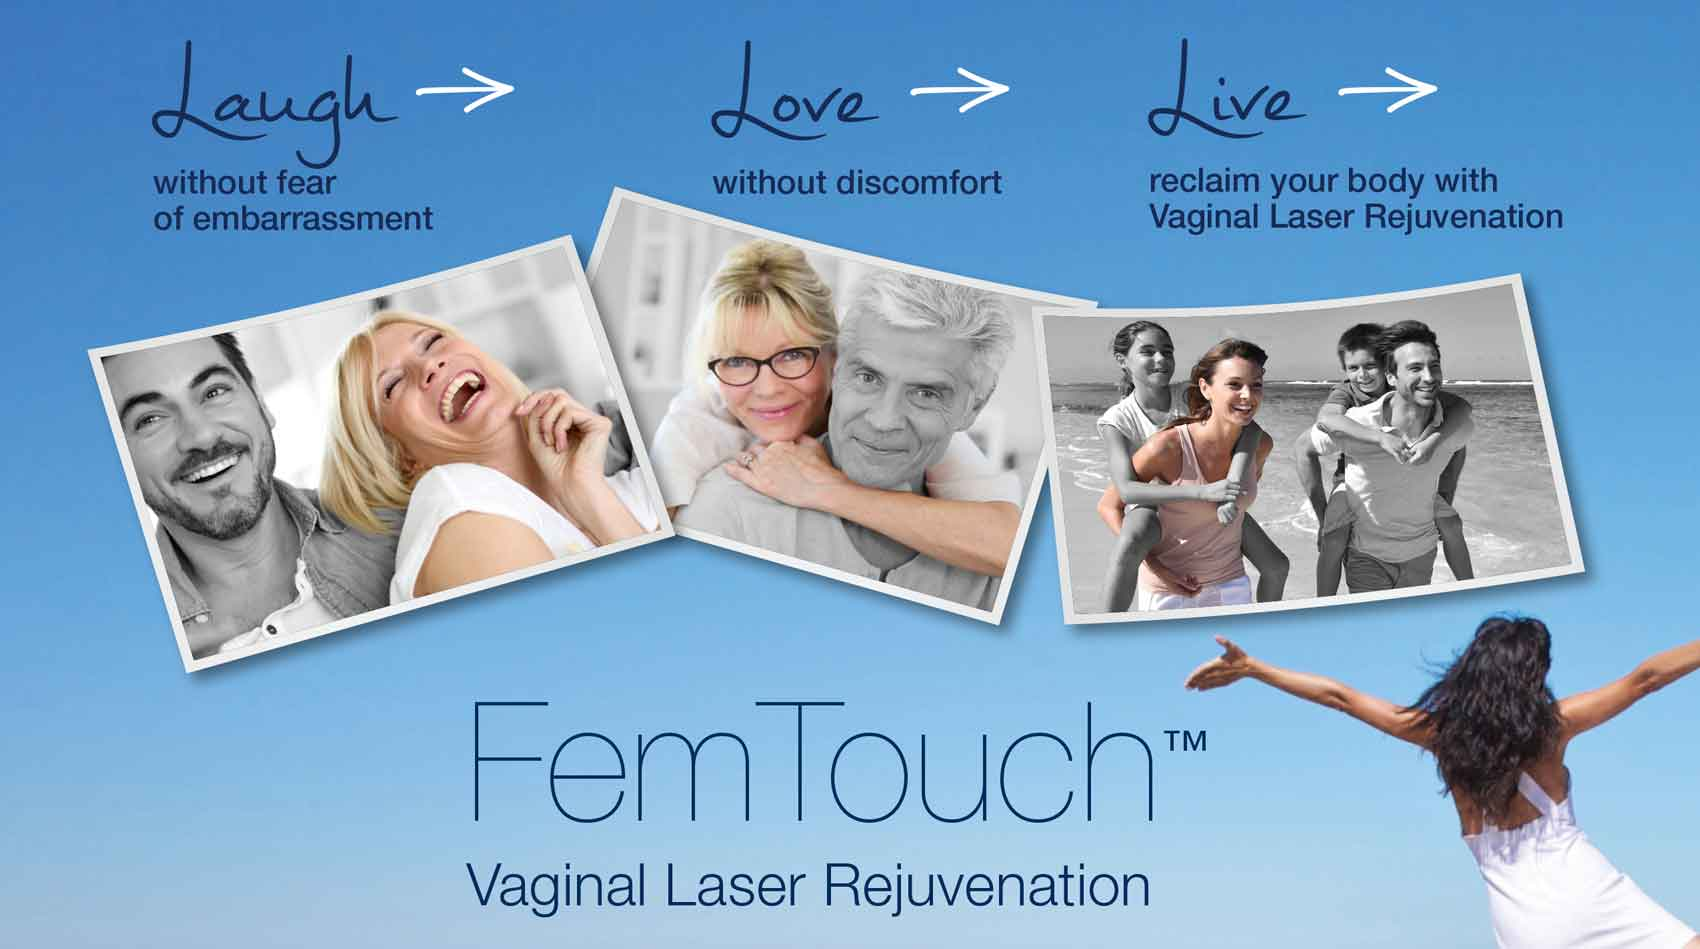 FemTouch Vaginal Rejuvenation